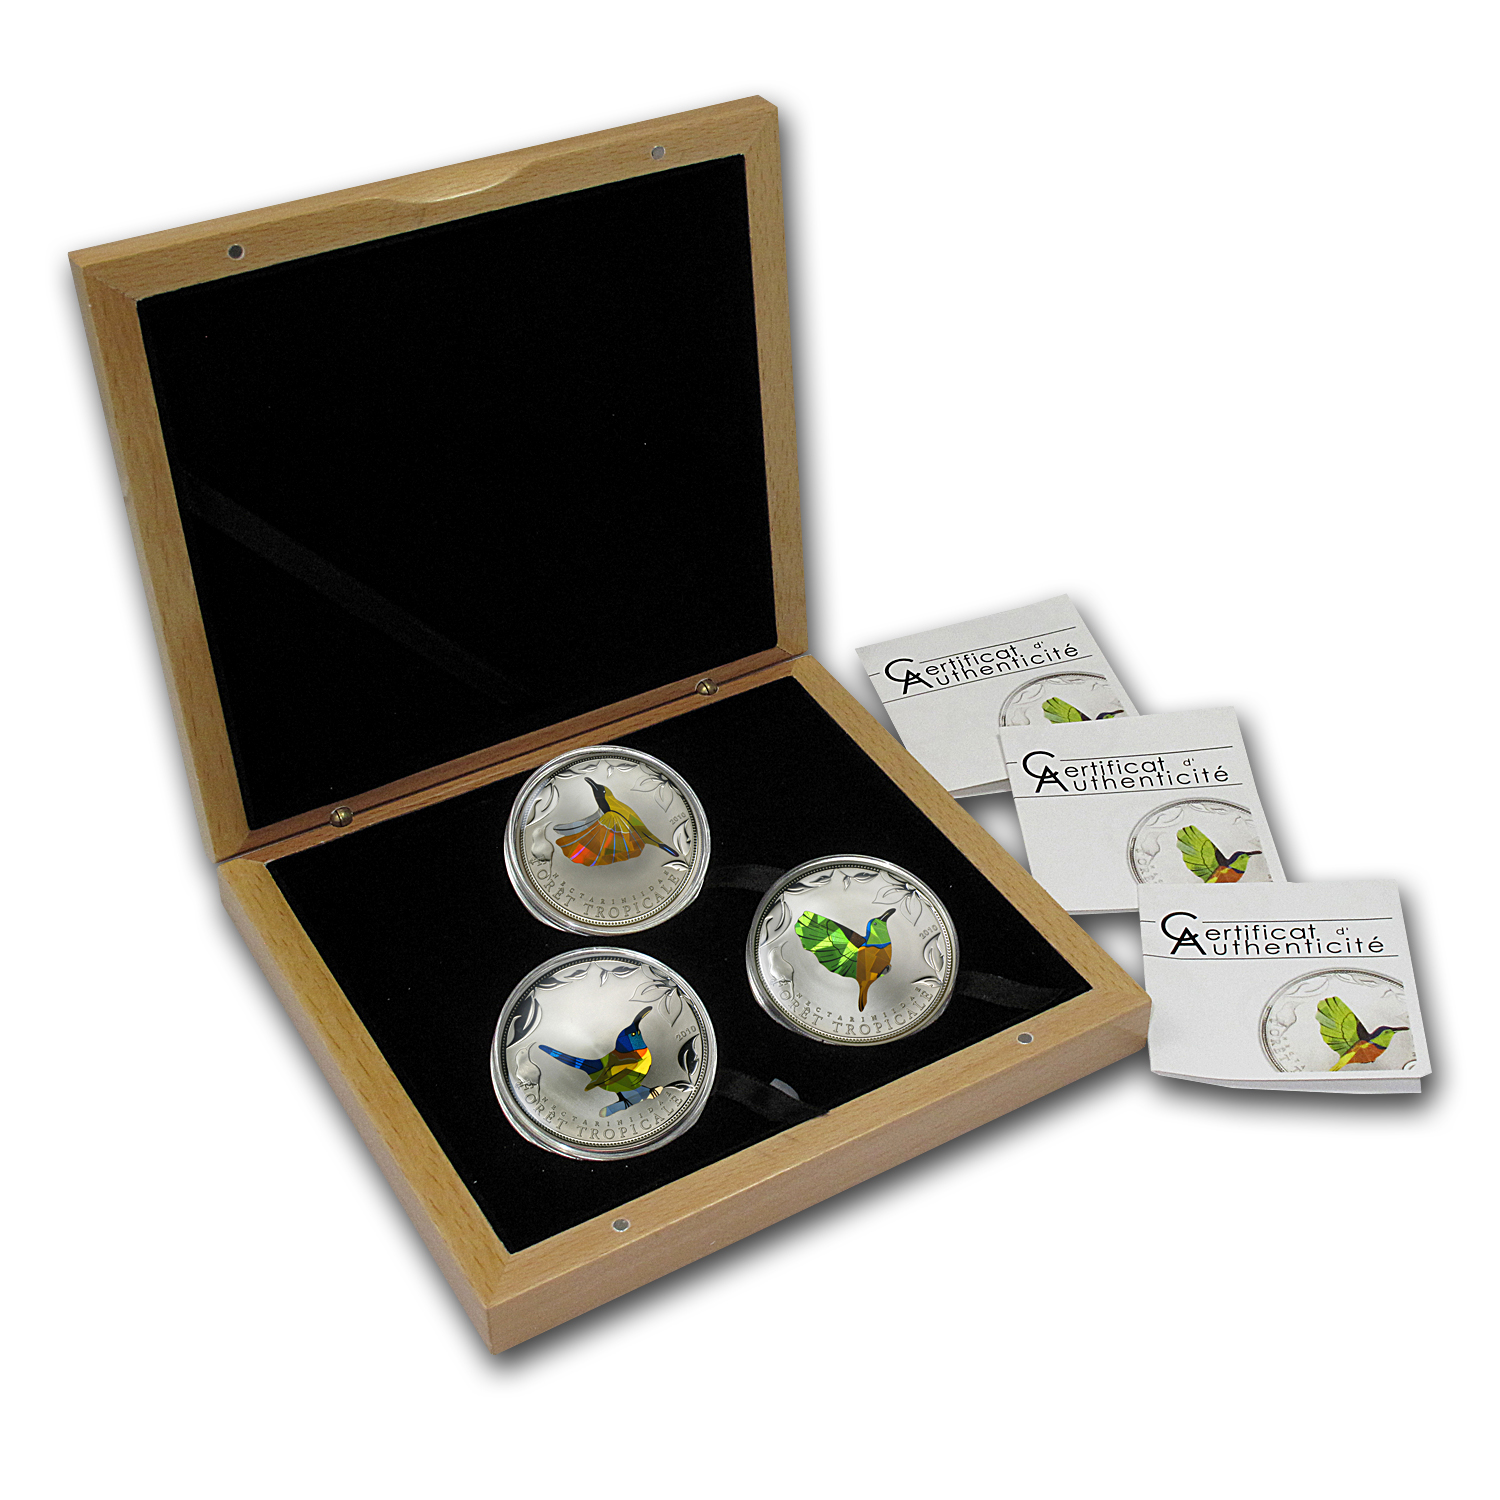 Togo 2010 Proof Silver Rainforest Wildlife Sunbirds - 3 Coin Set